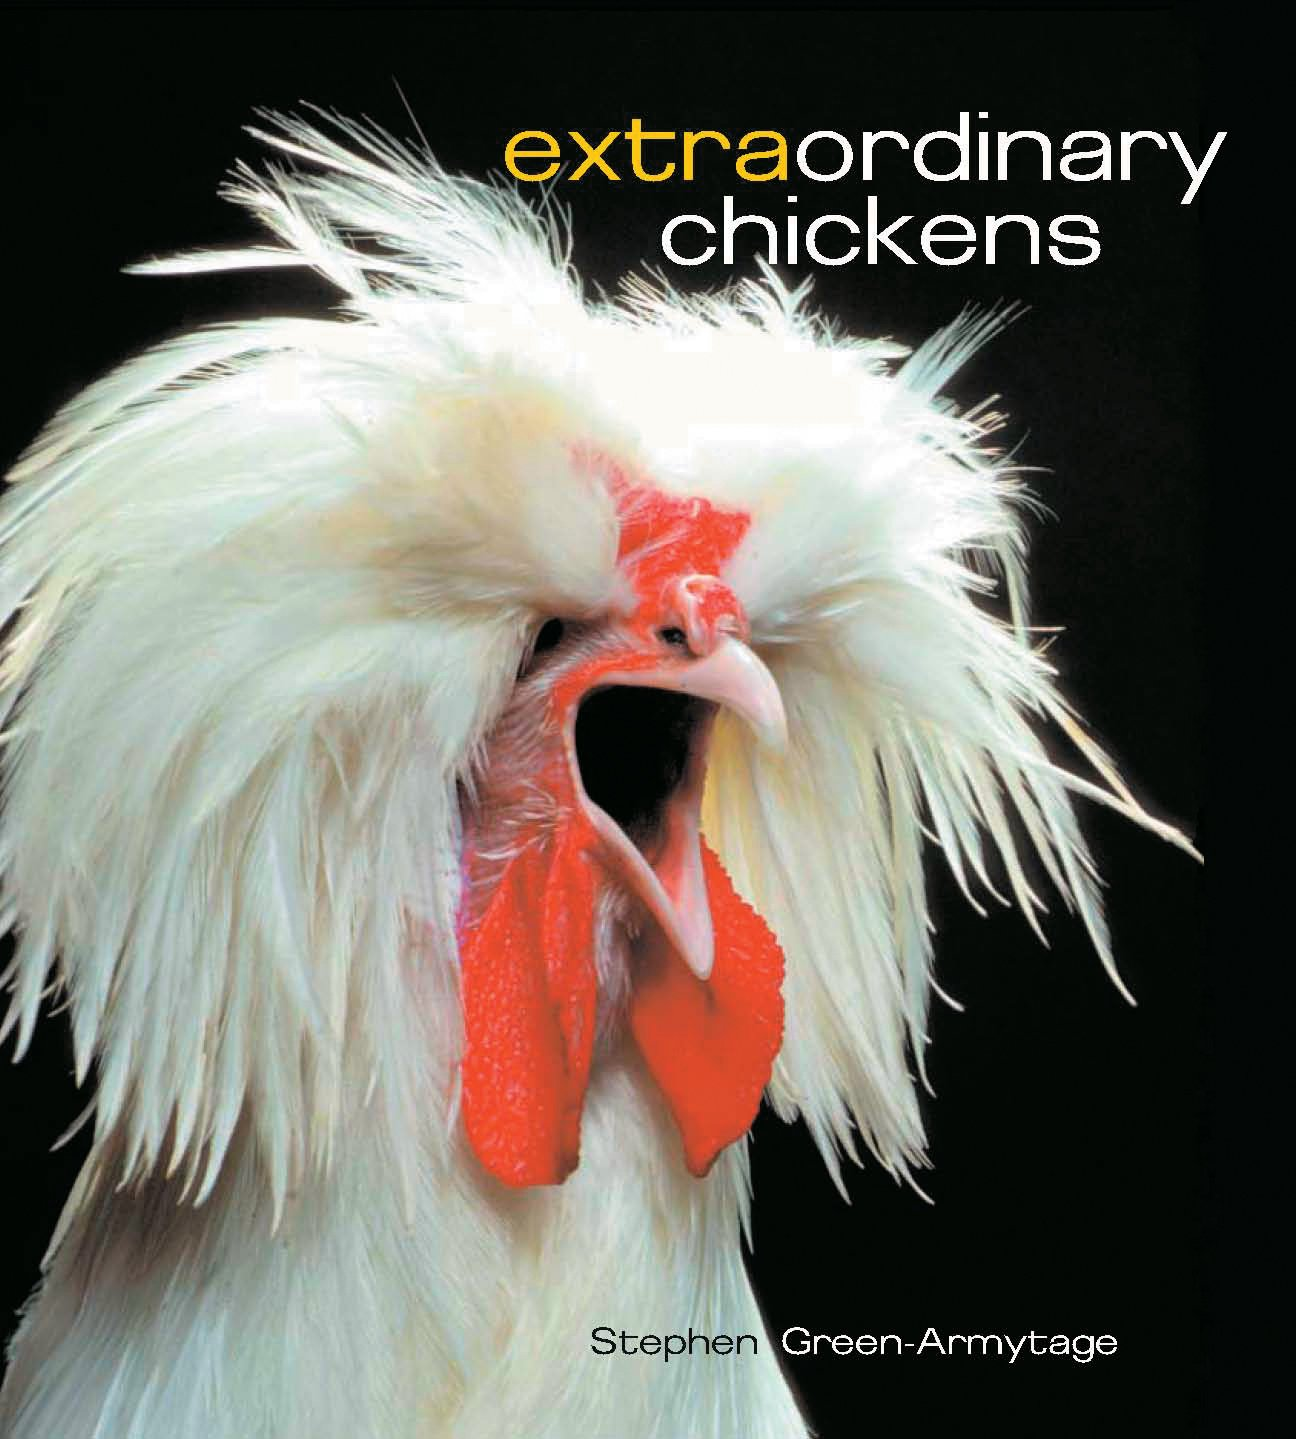 Extraordinary Chickens! It looks like I just found Adam Duritz's pet chicken.